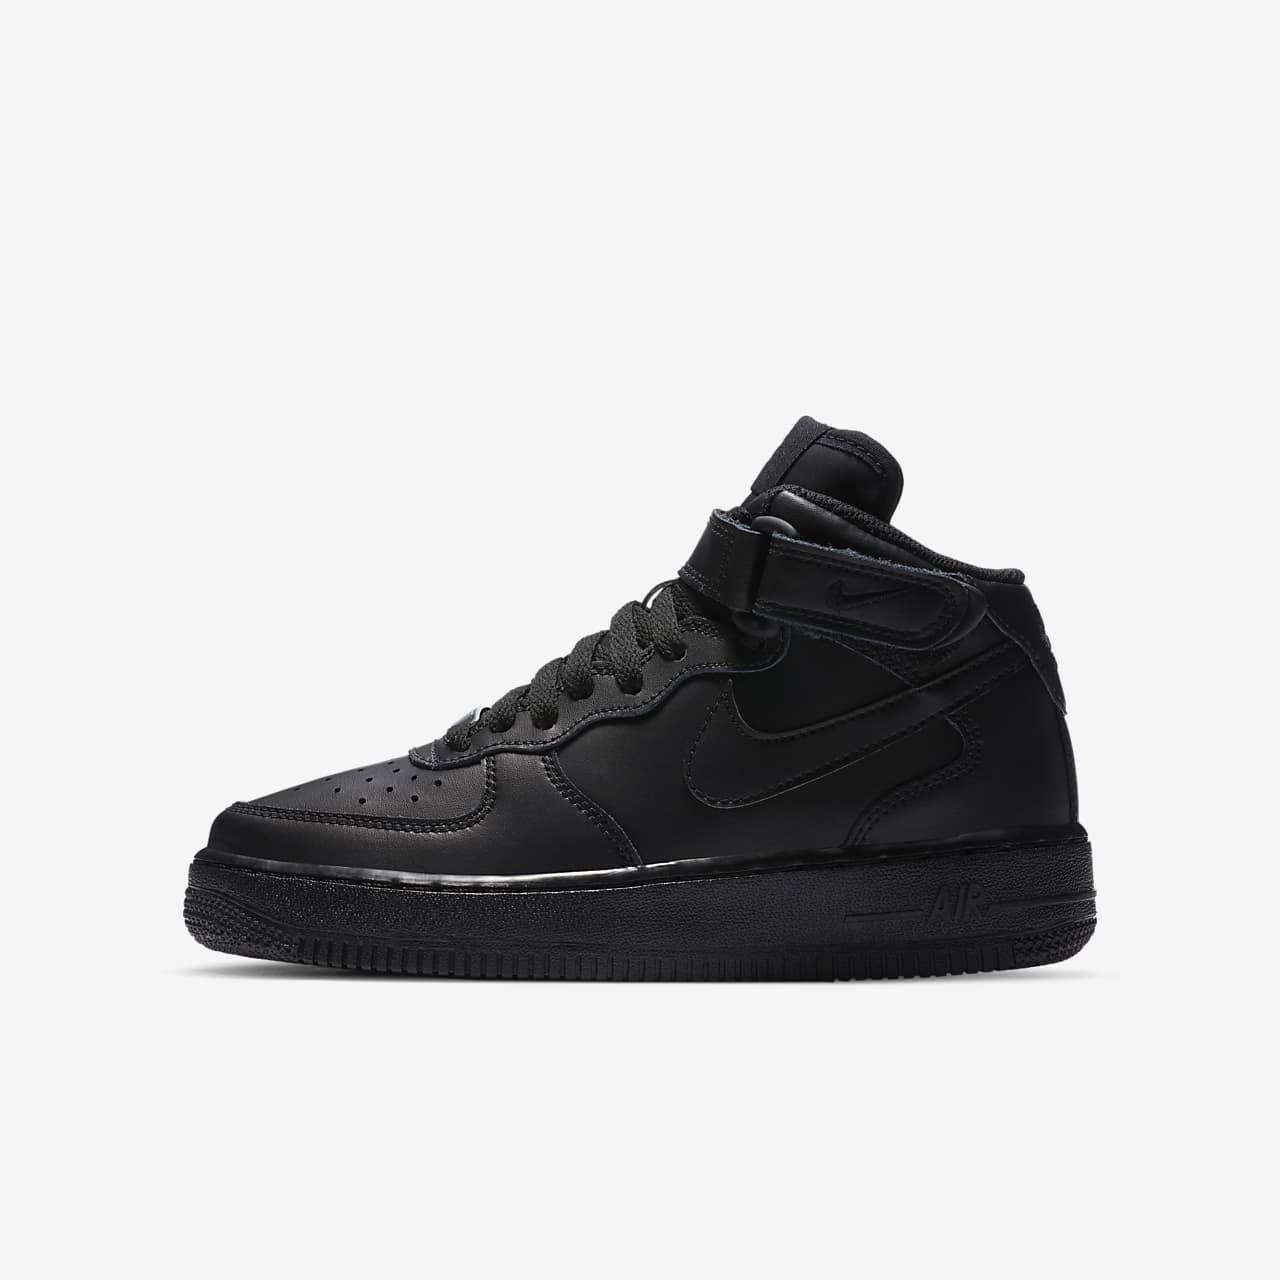 nike air force 1 mid lv8 younger kids' shoe nz